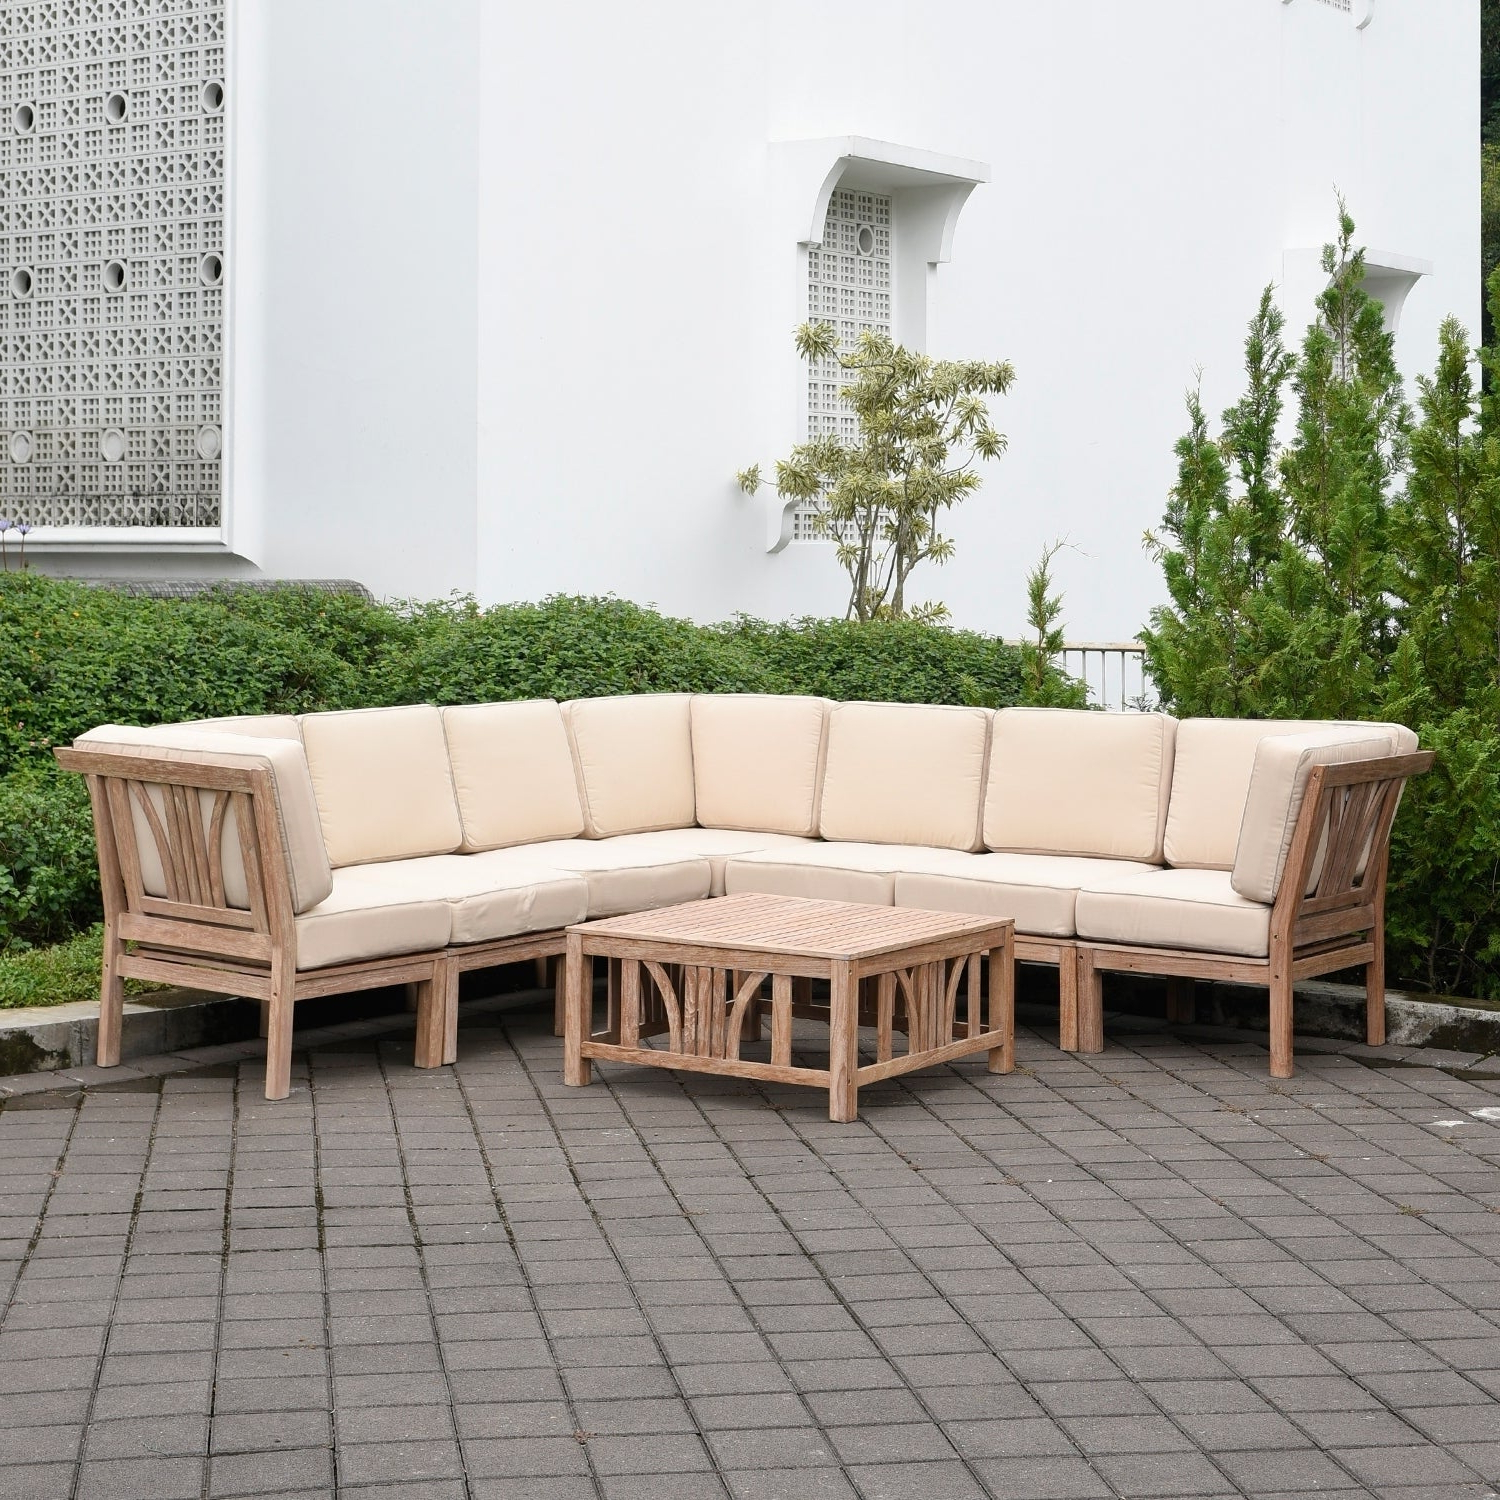 Havenside Home Delray 8 Piece Teak Patio Sectional Conversation Set With Favorite Montford Teak Patio Sofas With Cushions (View 5 of 20)